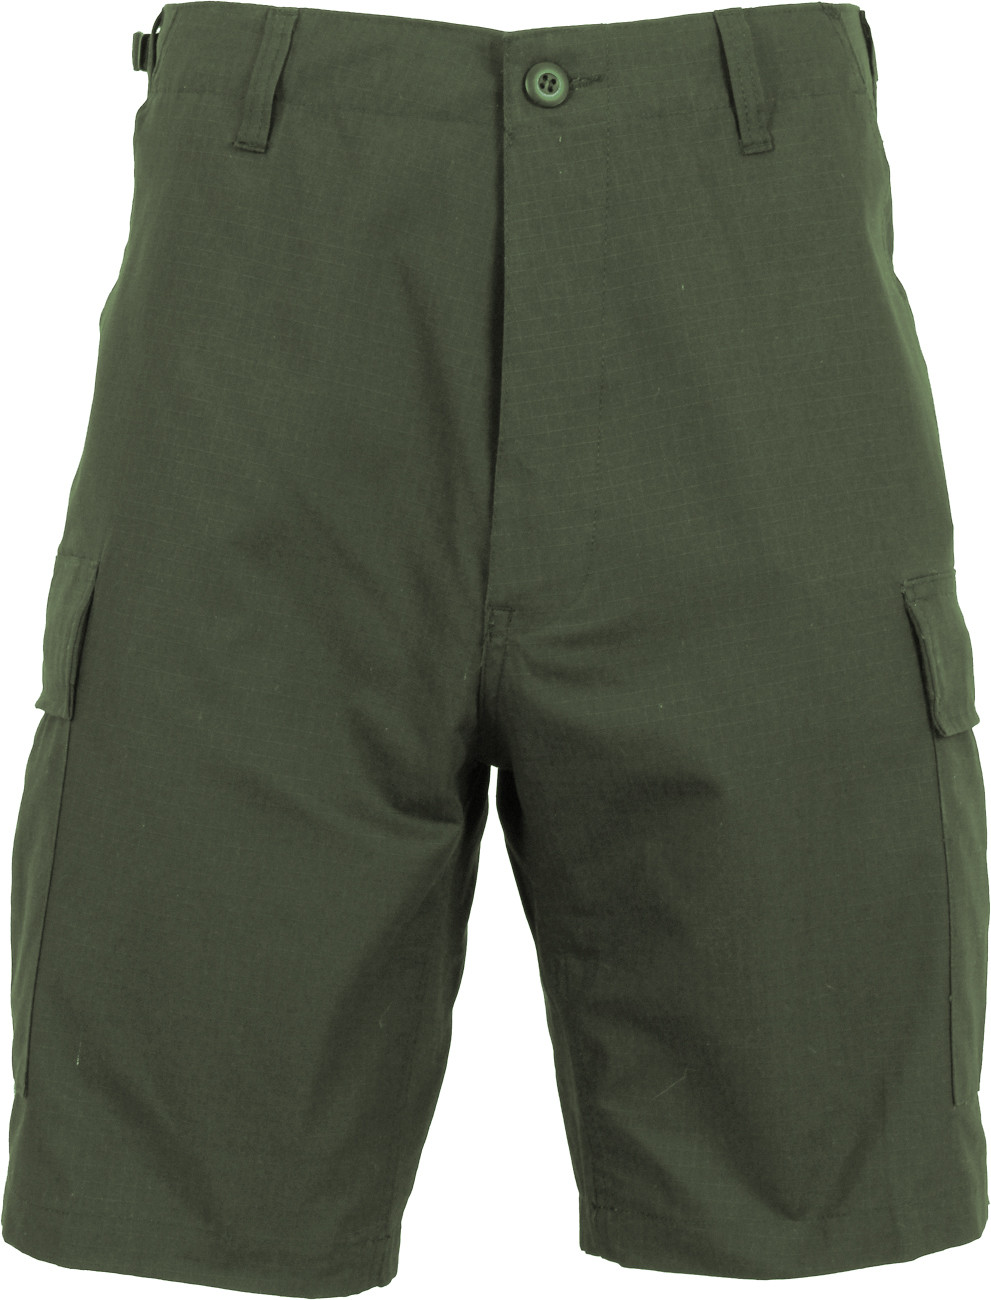 Olive Drab Rip-Stop Combat Military Cargo BDU Shorts b4789be42c9